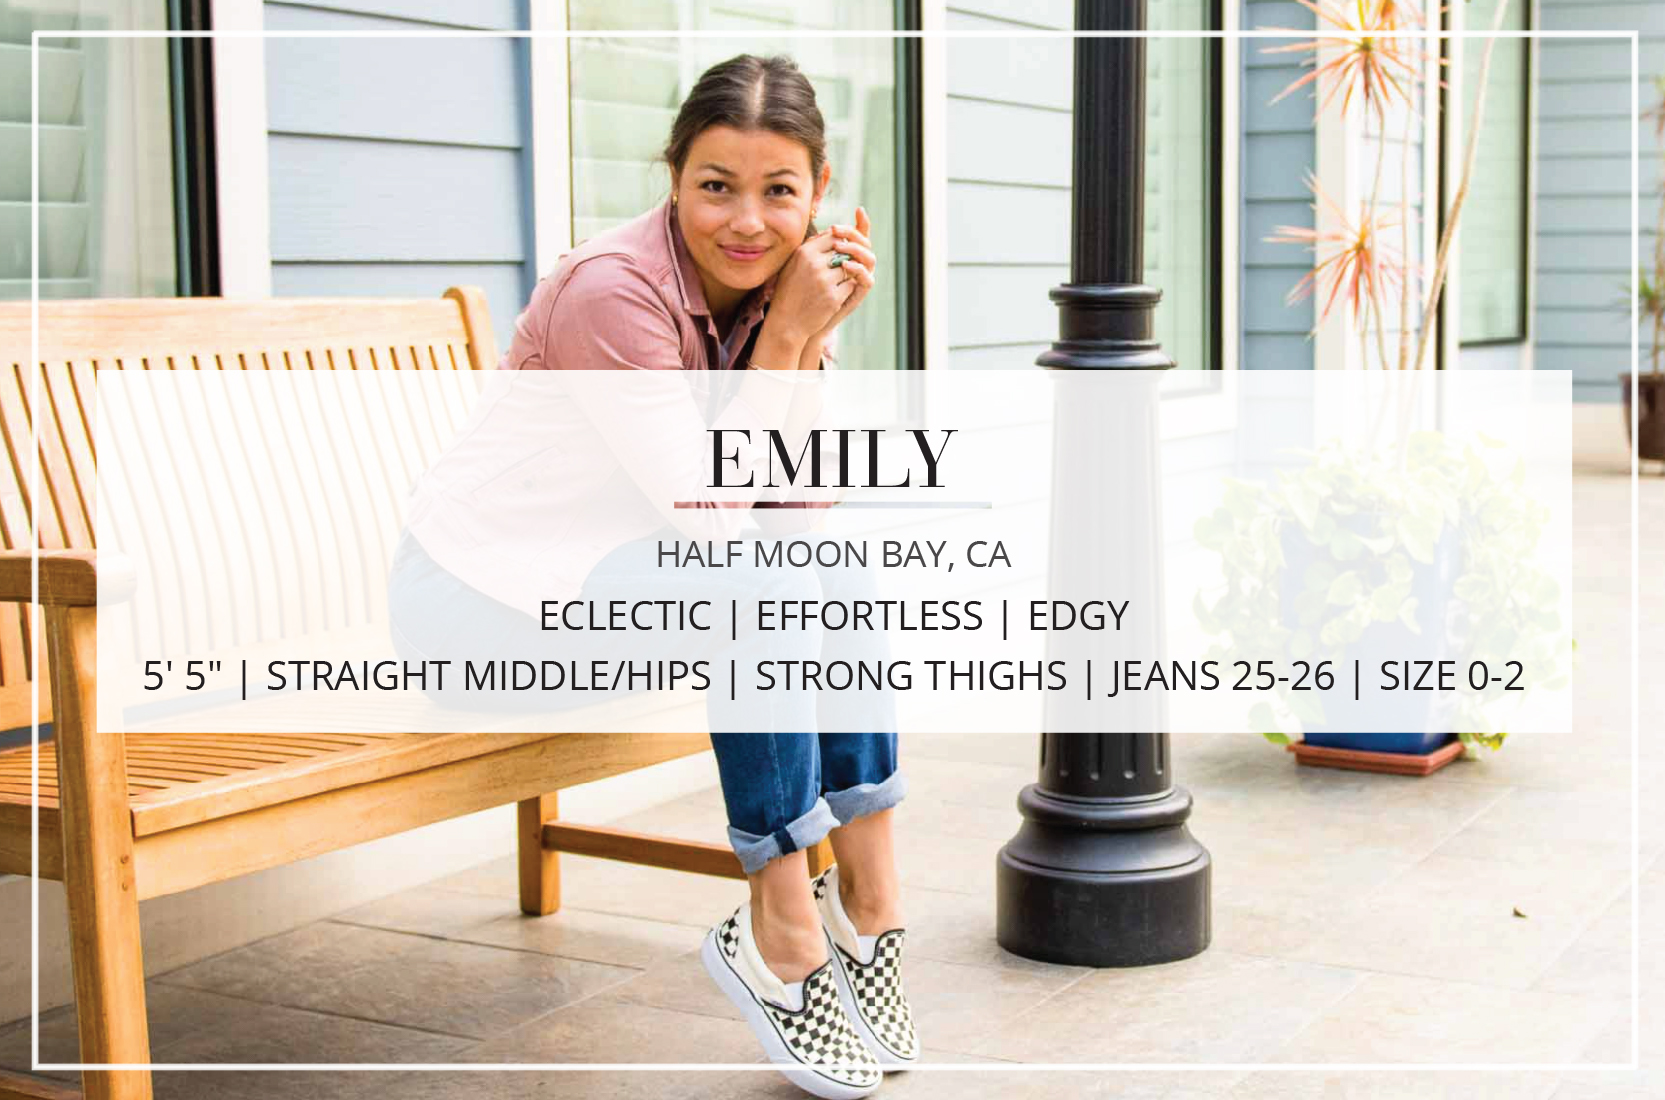 A contributor at The Mom Edit, Emily's style is eclectic, effortless & edgy; her cooking — comfy, fresh & accessible.